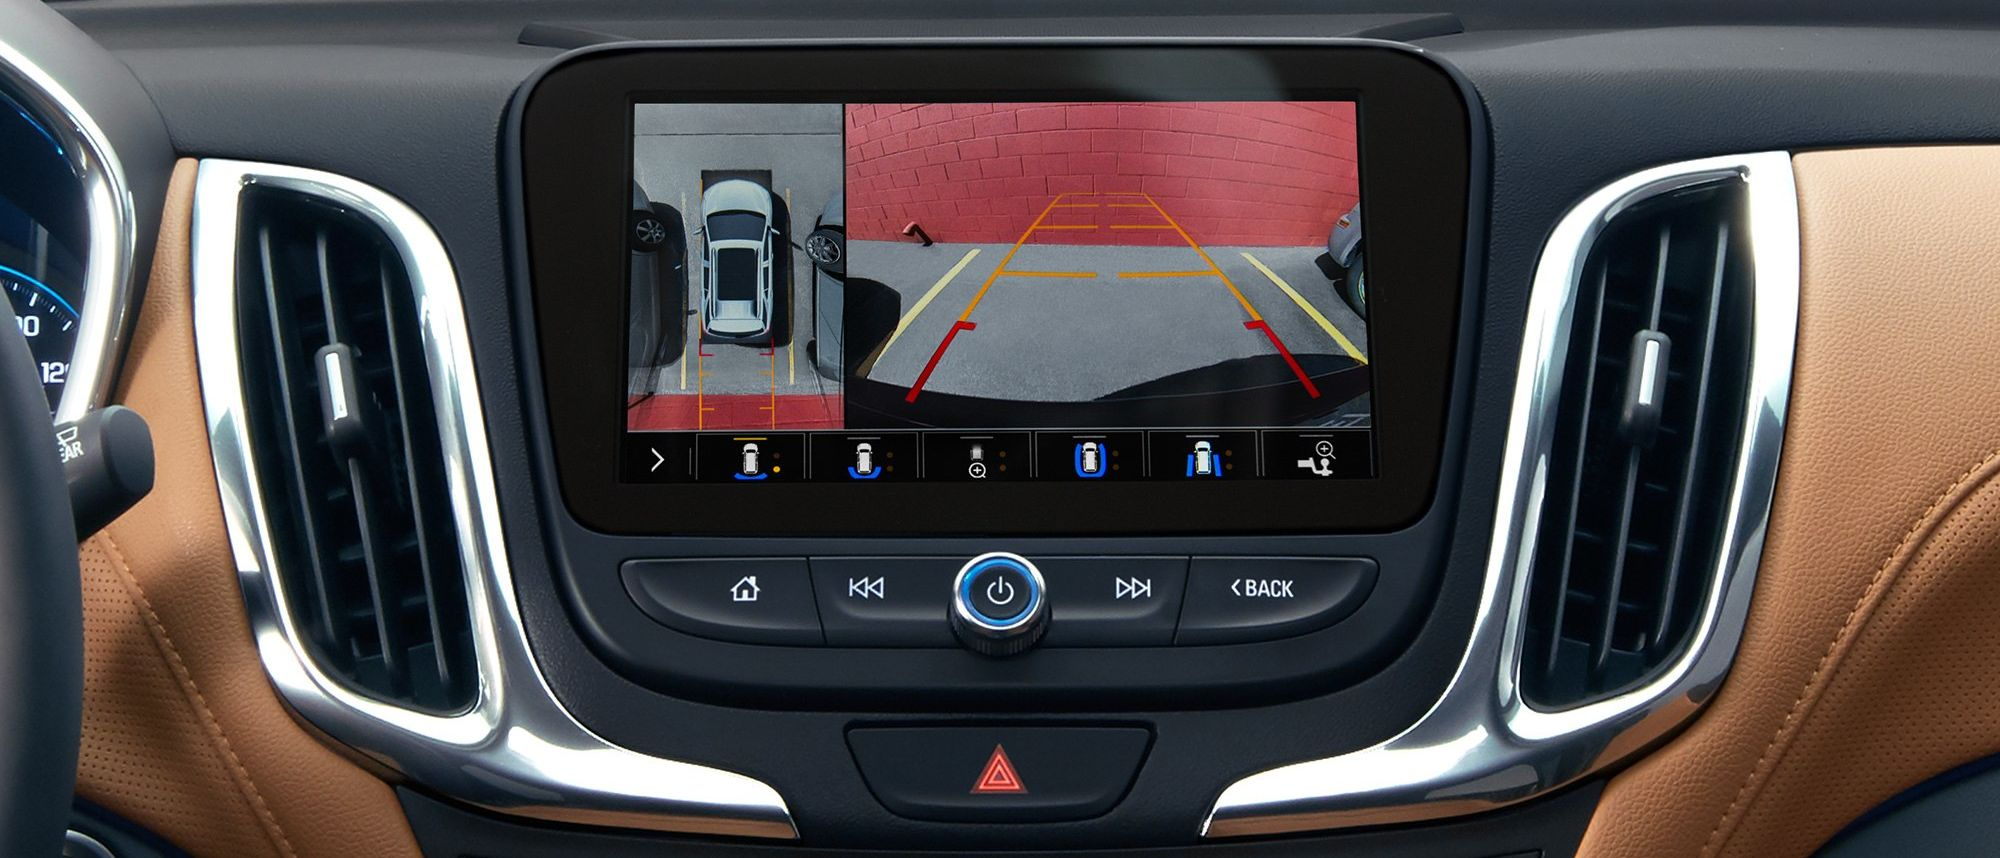 The Equinox's Helpful Rear Vision Camera